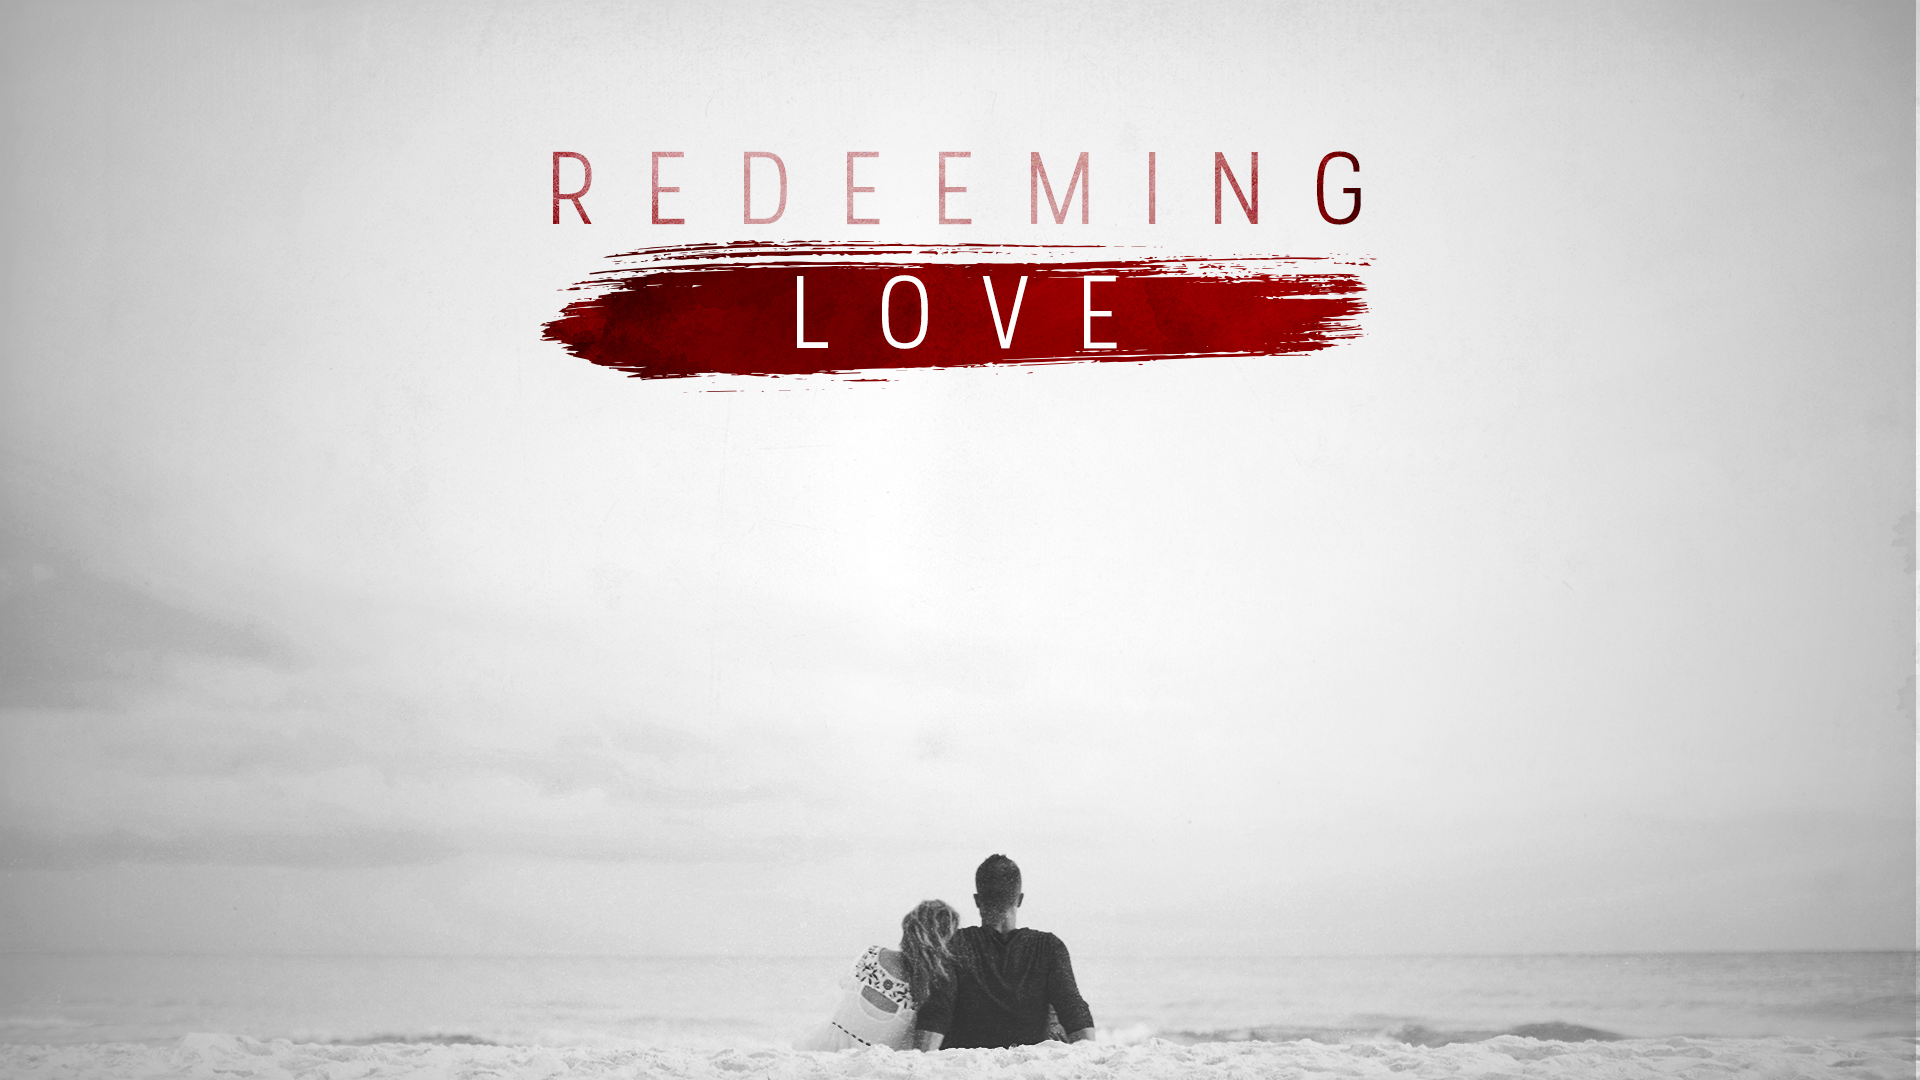 redeeming love.jpg